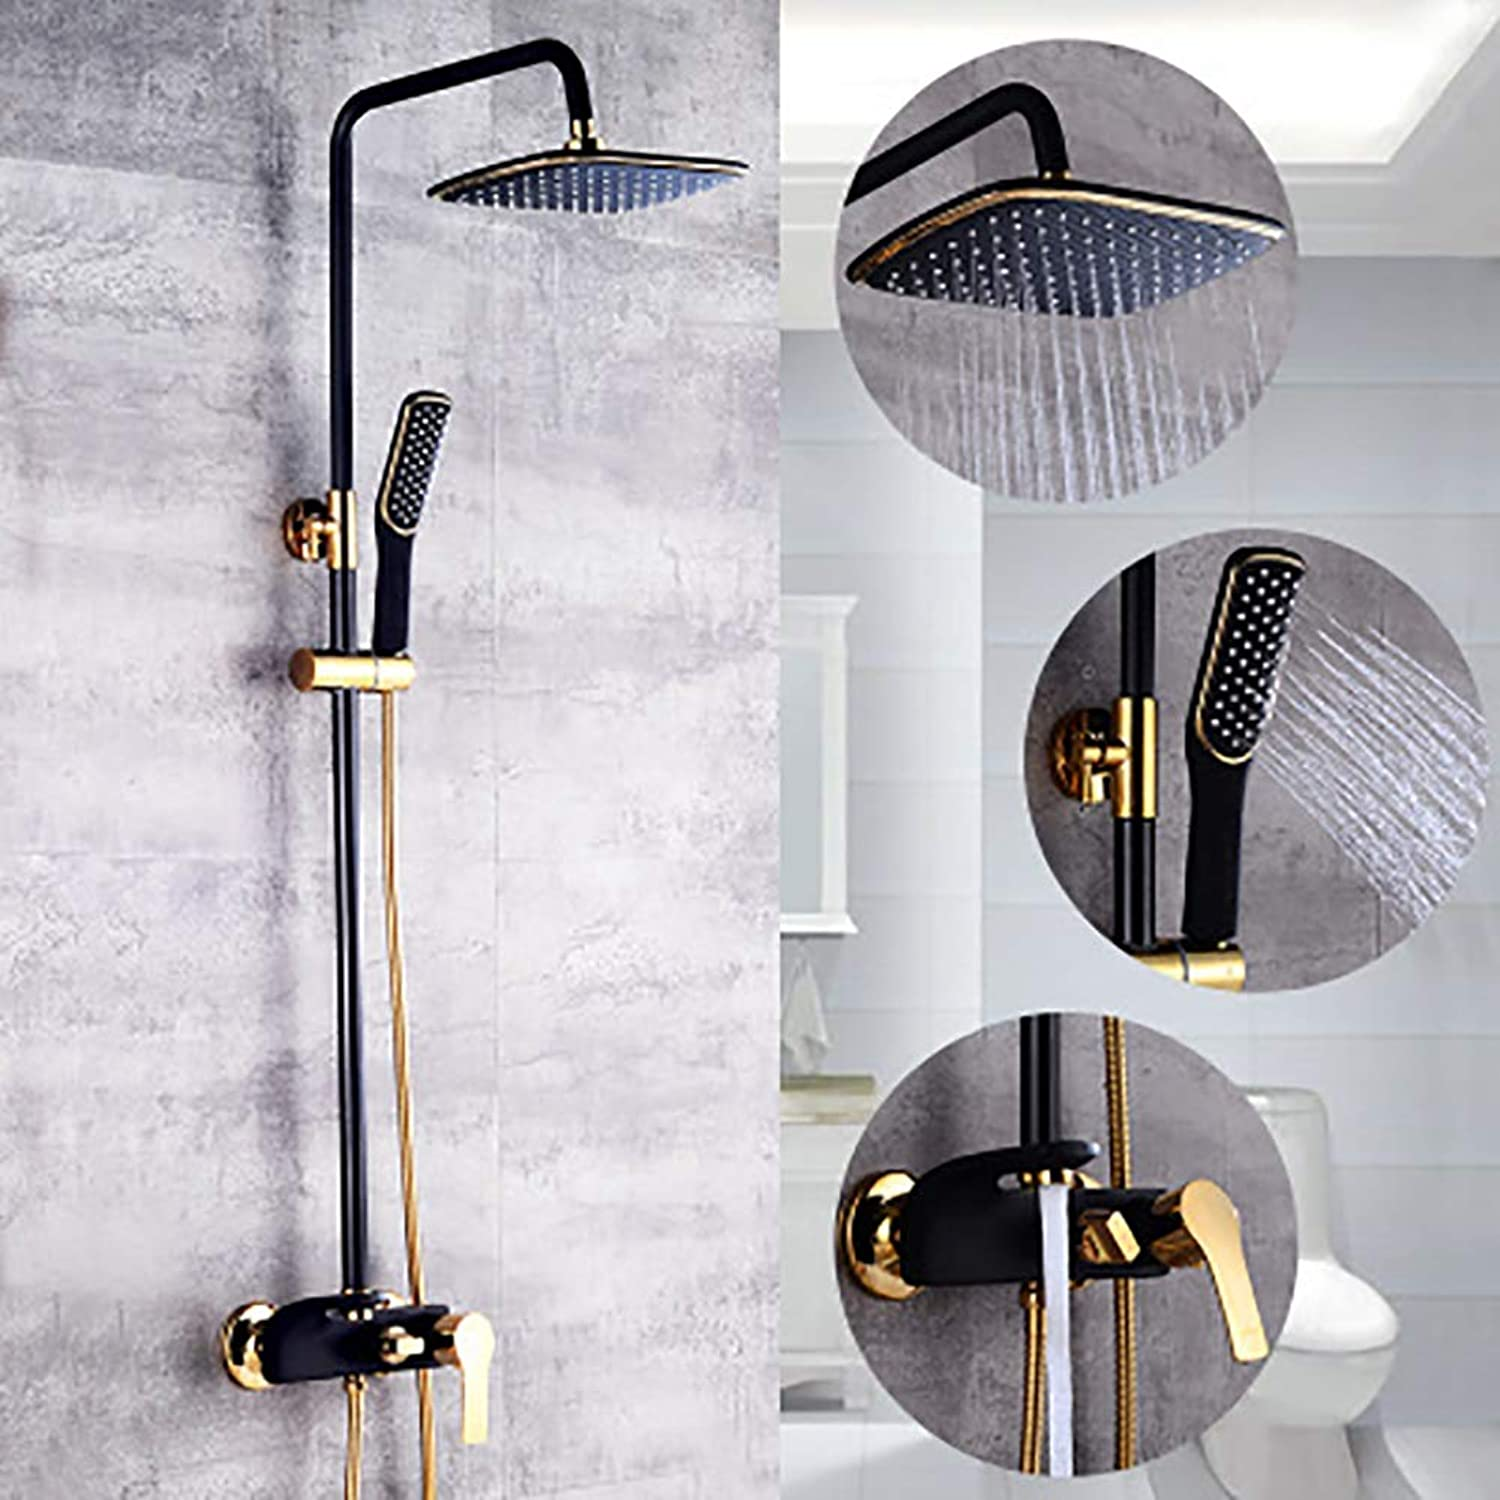 LSHUAIDJ Bathroom Luxury schwarz Shower System, All with Exquisite Copper, Shower Faucet, Square Shower, Hand Shower and Bathtub Faucet (Including mounting Accessories)